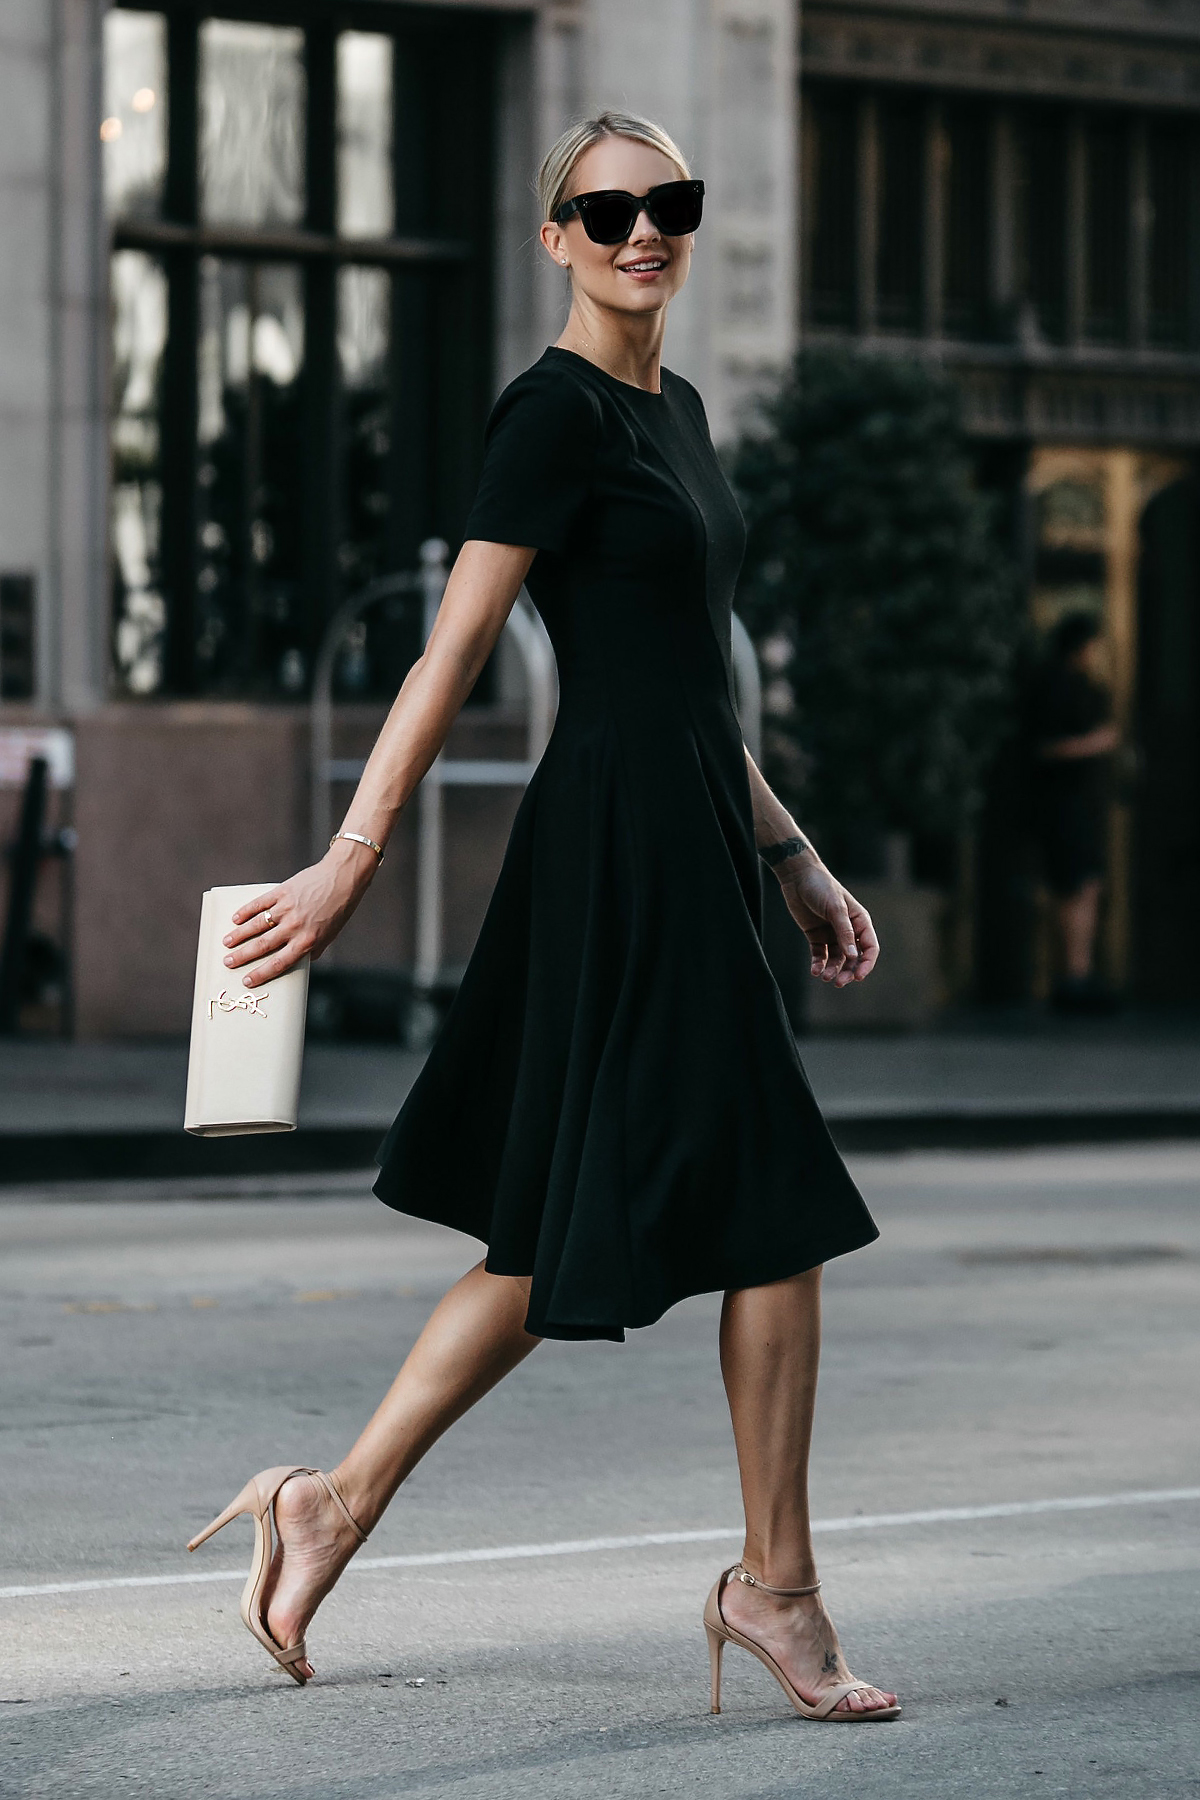 Blonde Woman Wearing Black Halo Asymmetrical Little Black Dress Saint Laurent Nude Clutch Steve Madden Stecy Ankle Strap Heels Fashion Jackson Dallas Blogger Fashion Blogger